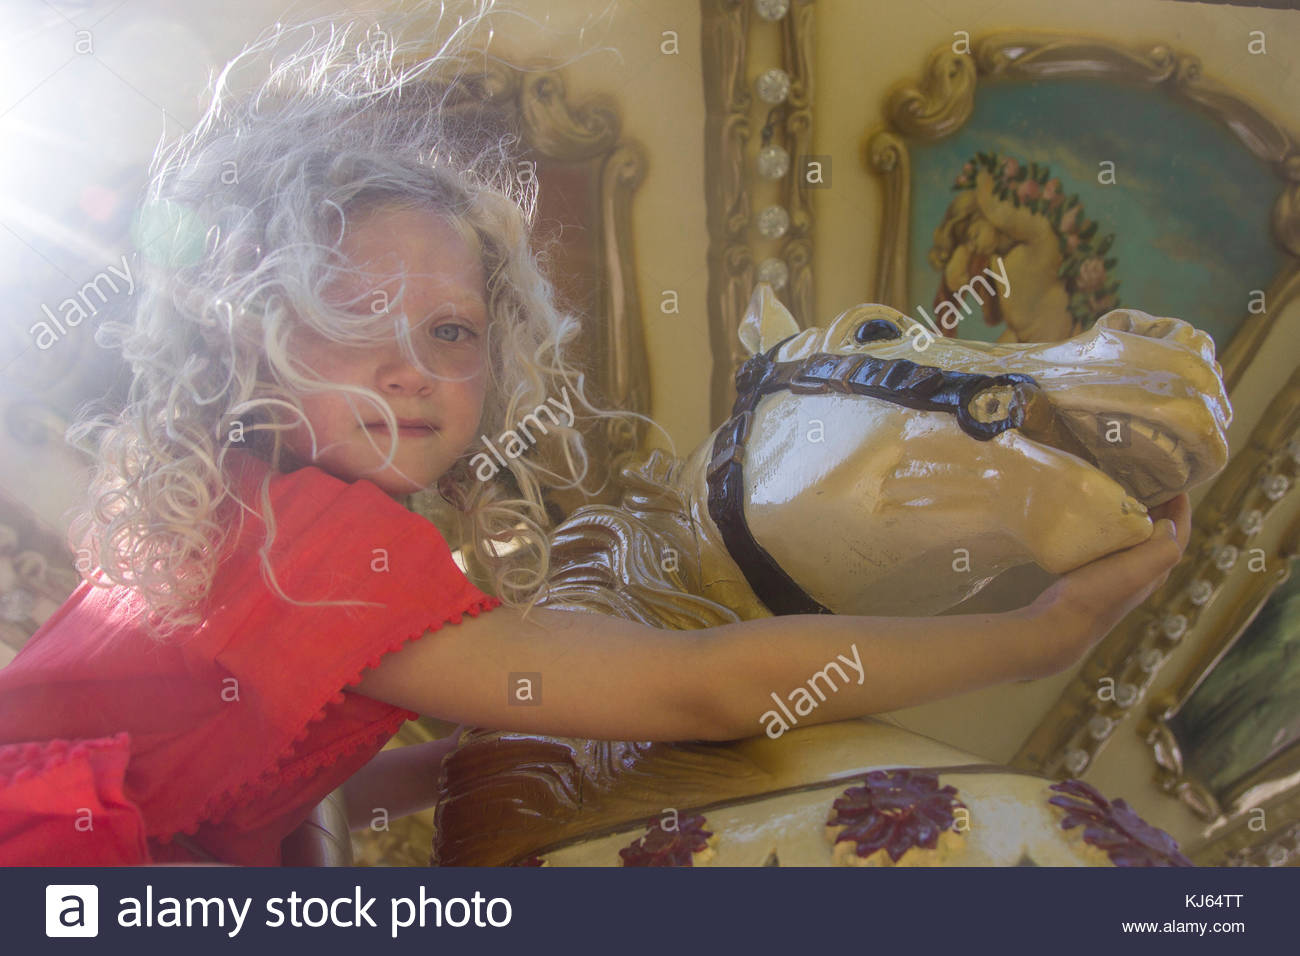 Blonde little girl playing at the fair - Stock Image